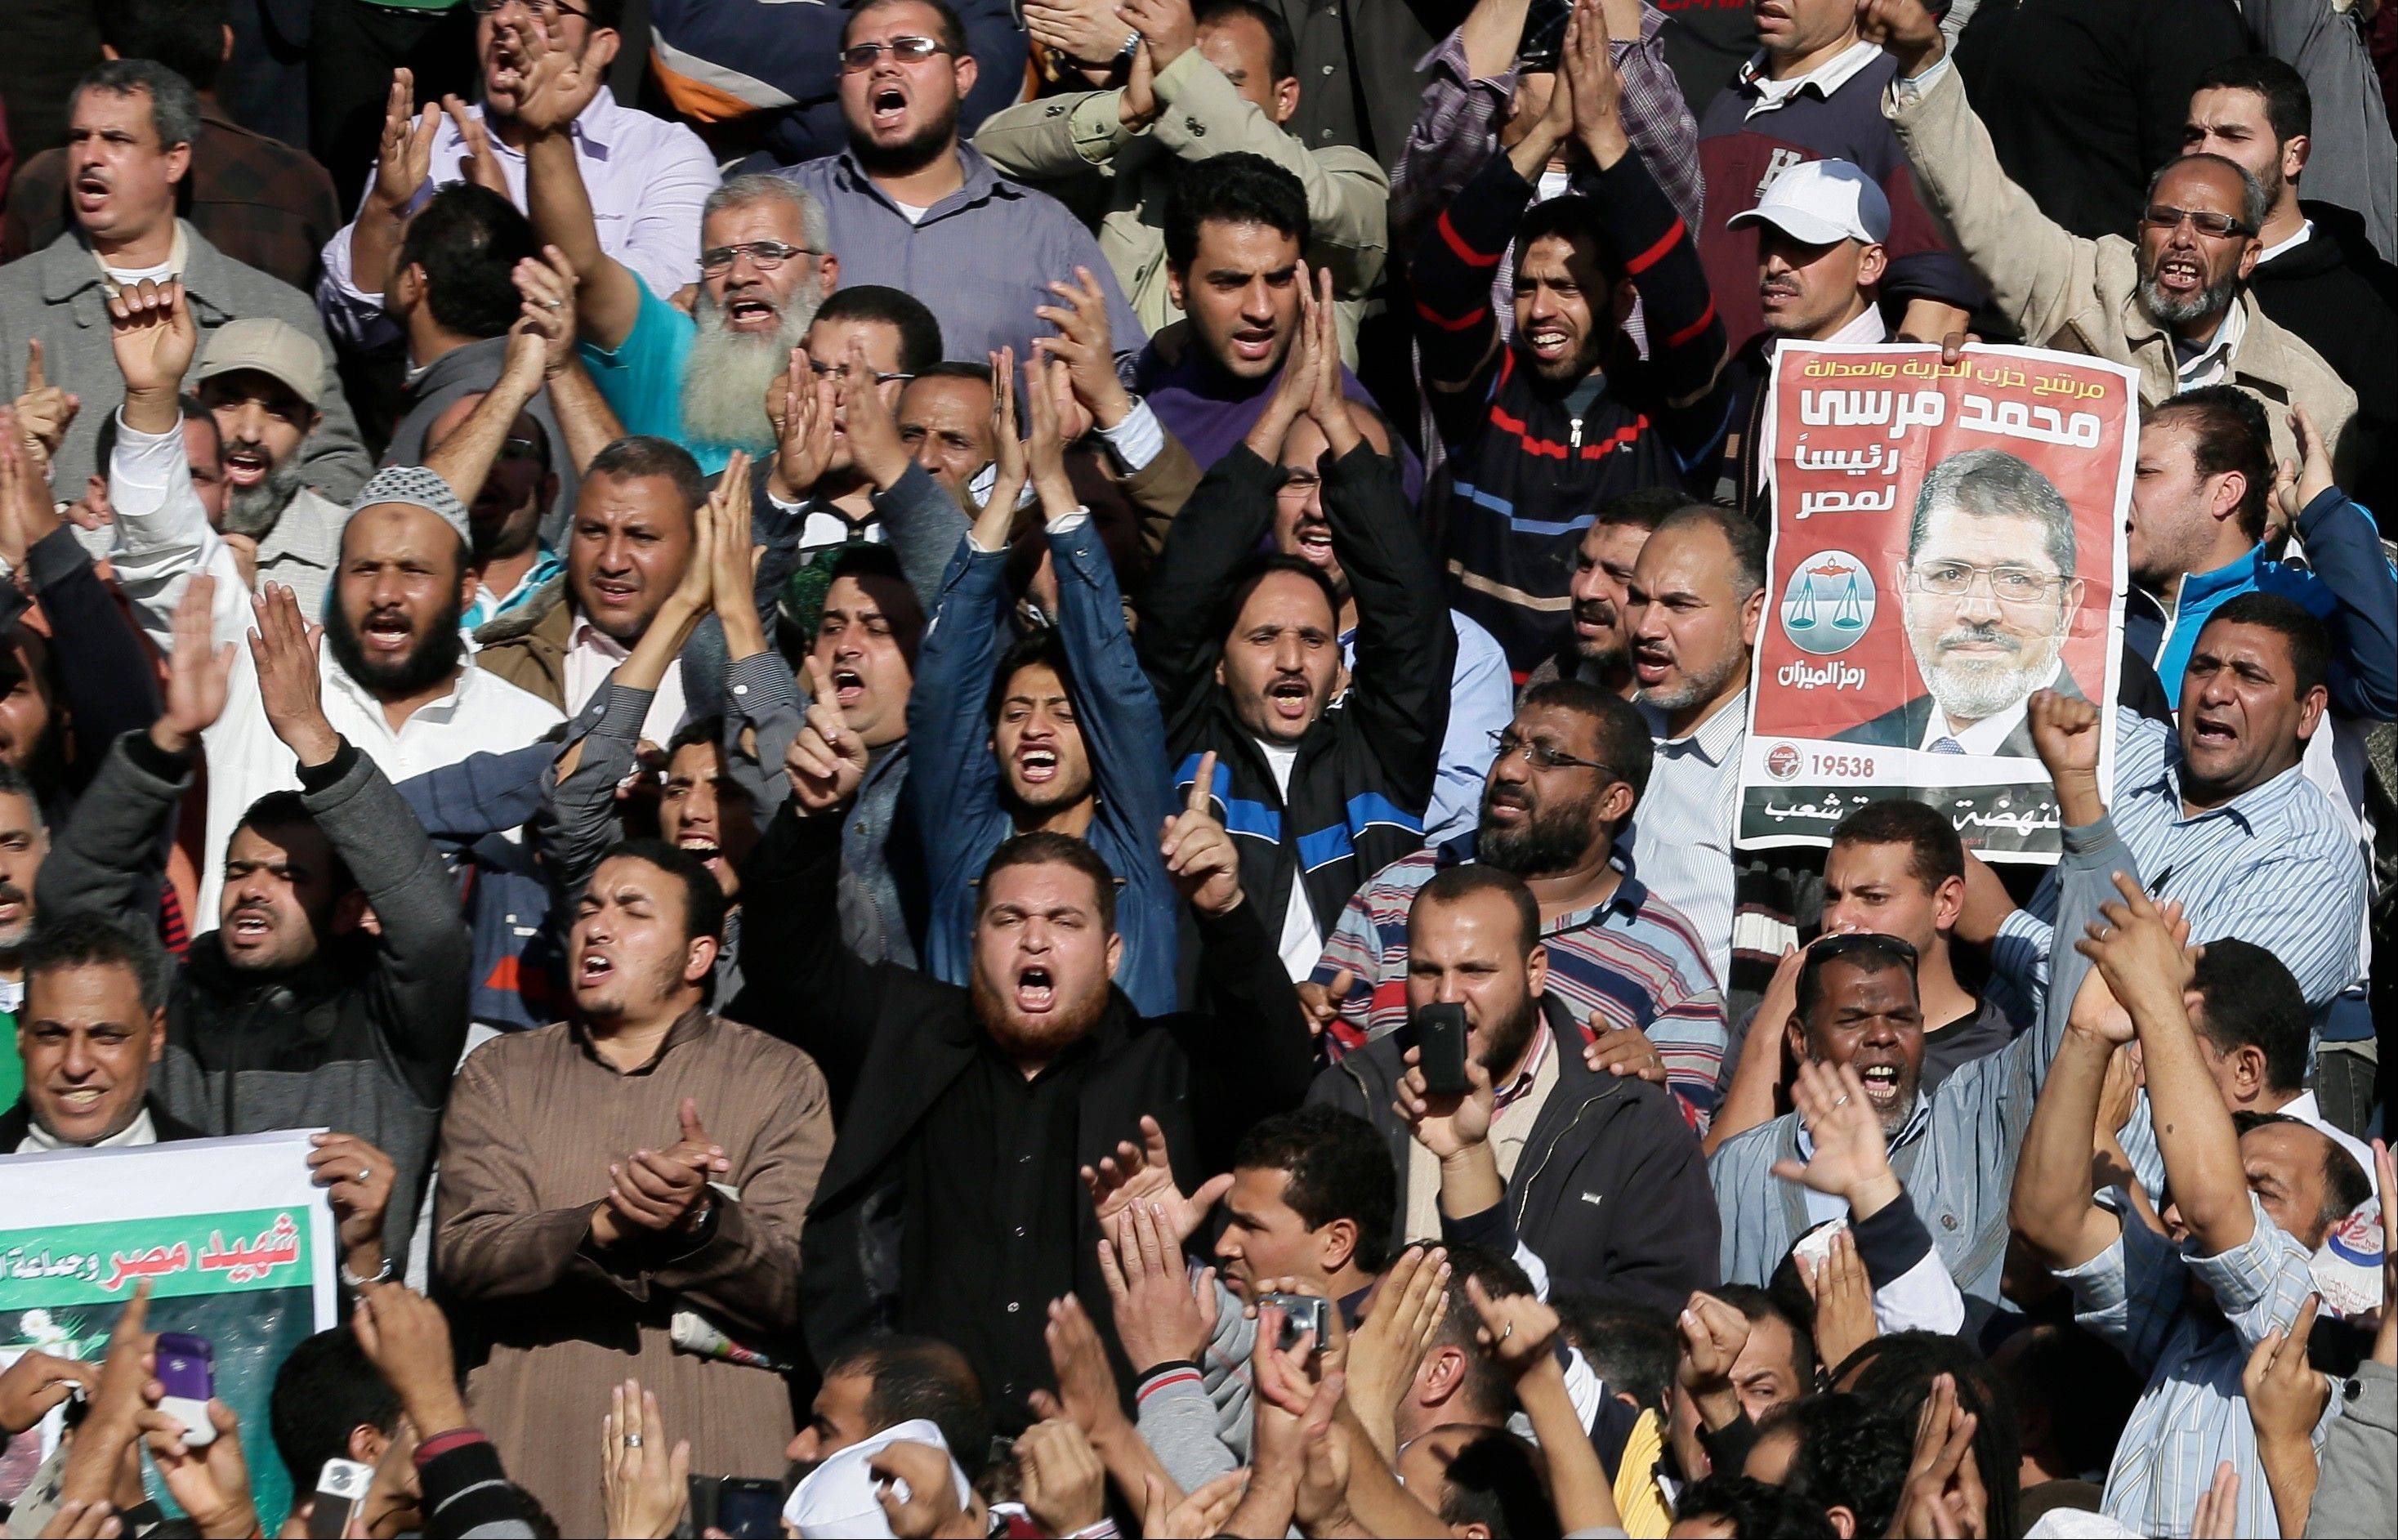 Supporters of Muslim Brotherhood and Egyptian President Mohammed Morsi, pictured at right, chant slogans during the funeral of three victims who were killed during Wednesday�s clashes outside Al-Azhar mosque, the highest Islamic Sunni institution, Friday, Dec. 7, 2012. During the funeral, thousands Islamist mourners chanted, �with blood and soul, we redeem Islam,� pumping their fists in the air. �Egypt is Islamic, it will not be secular, it will not be liberal,� they chanted as they walked in a funeral procession that filled streets around Al-Azhar mosque.